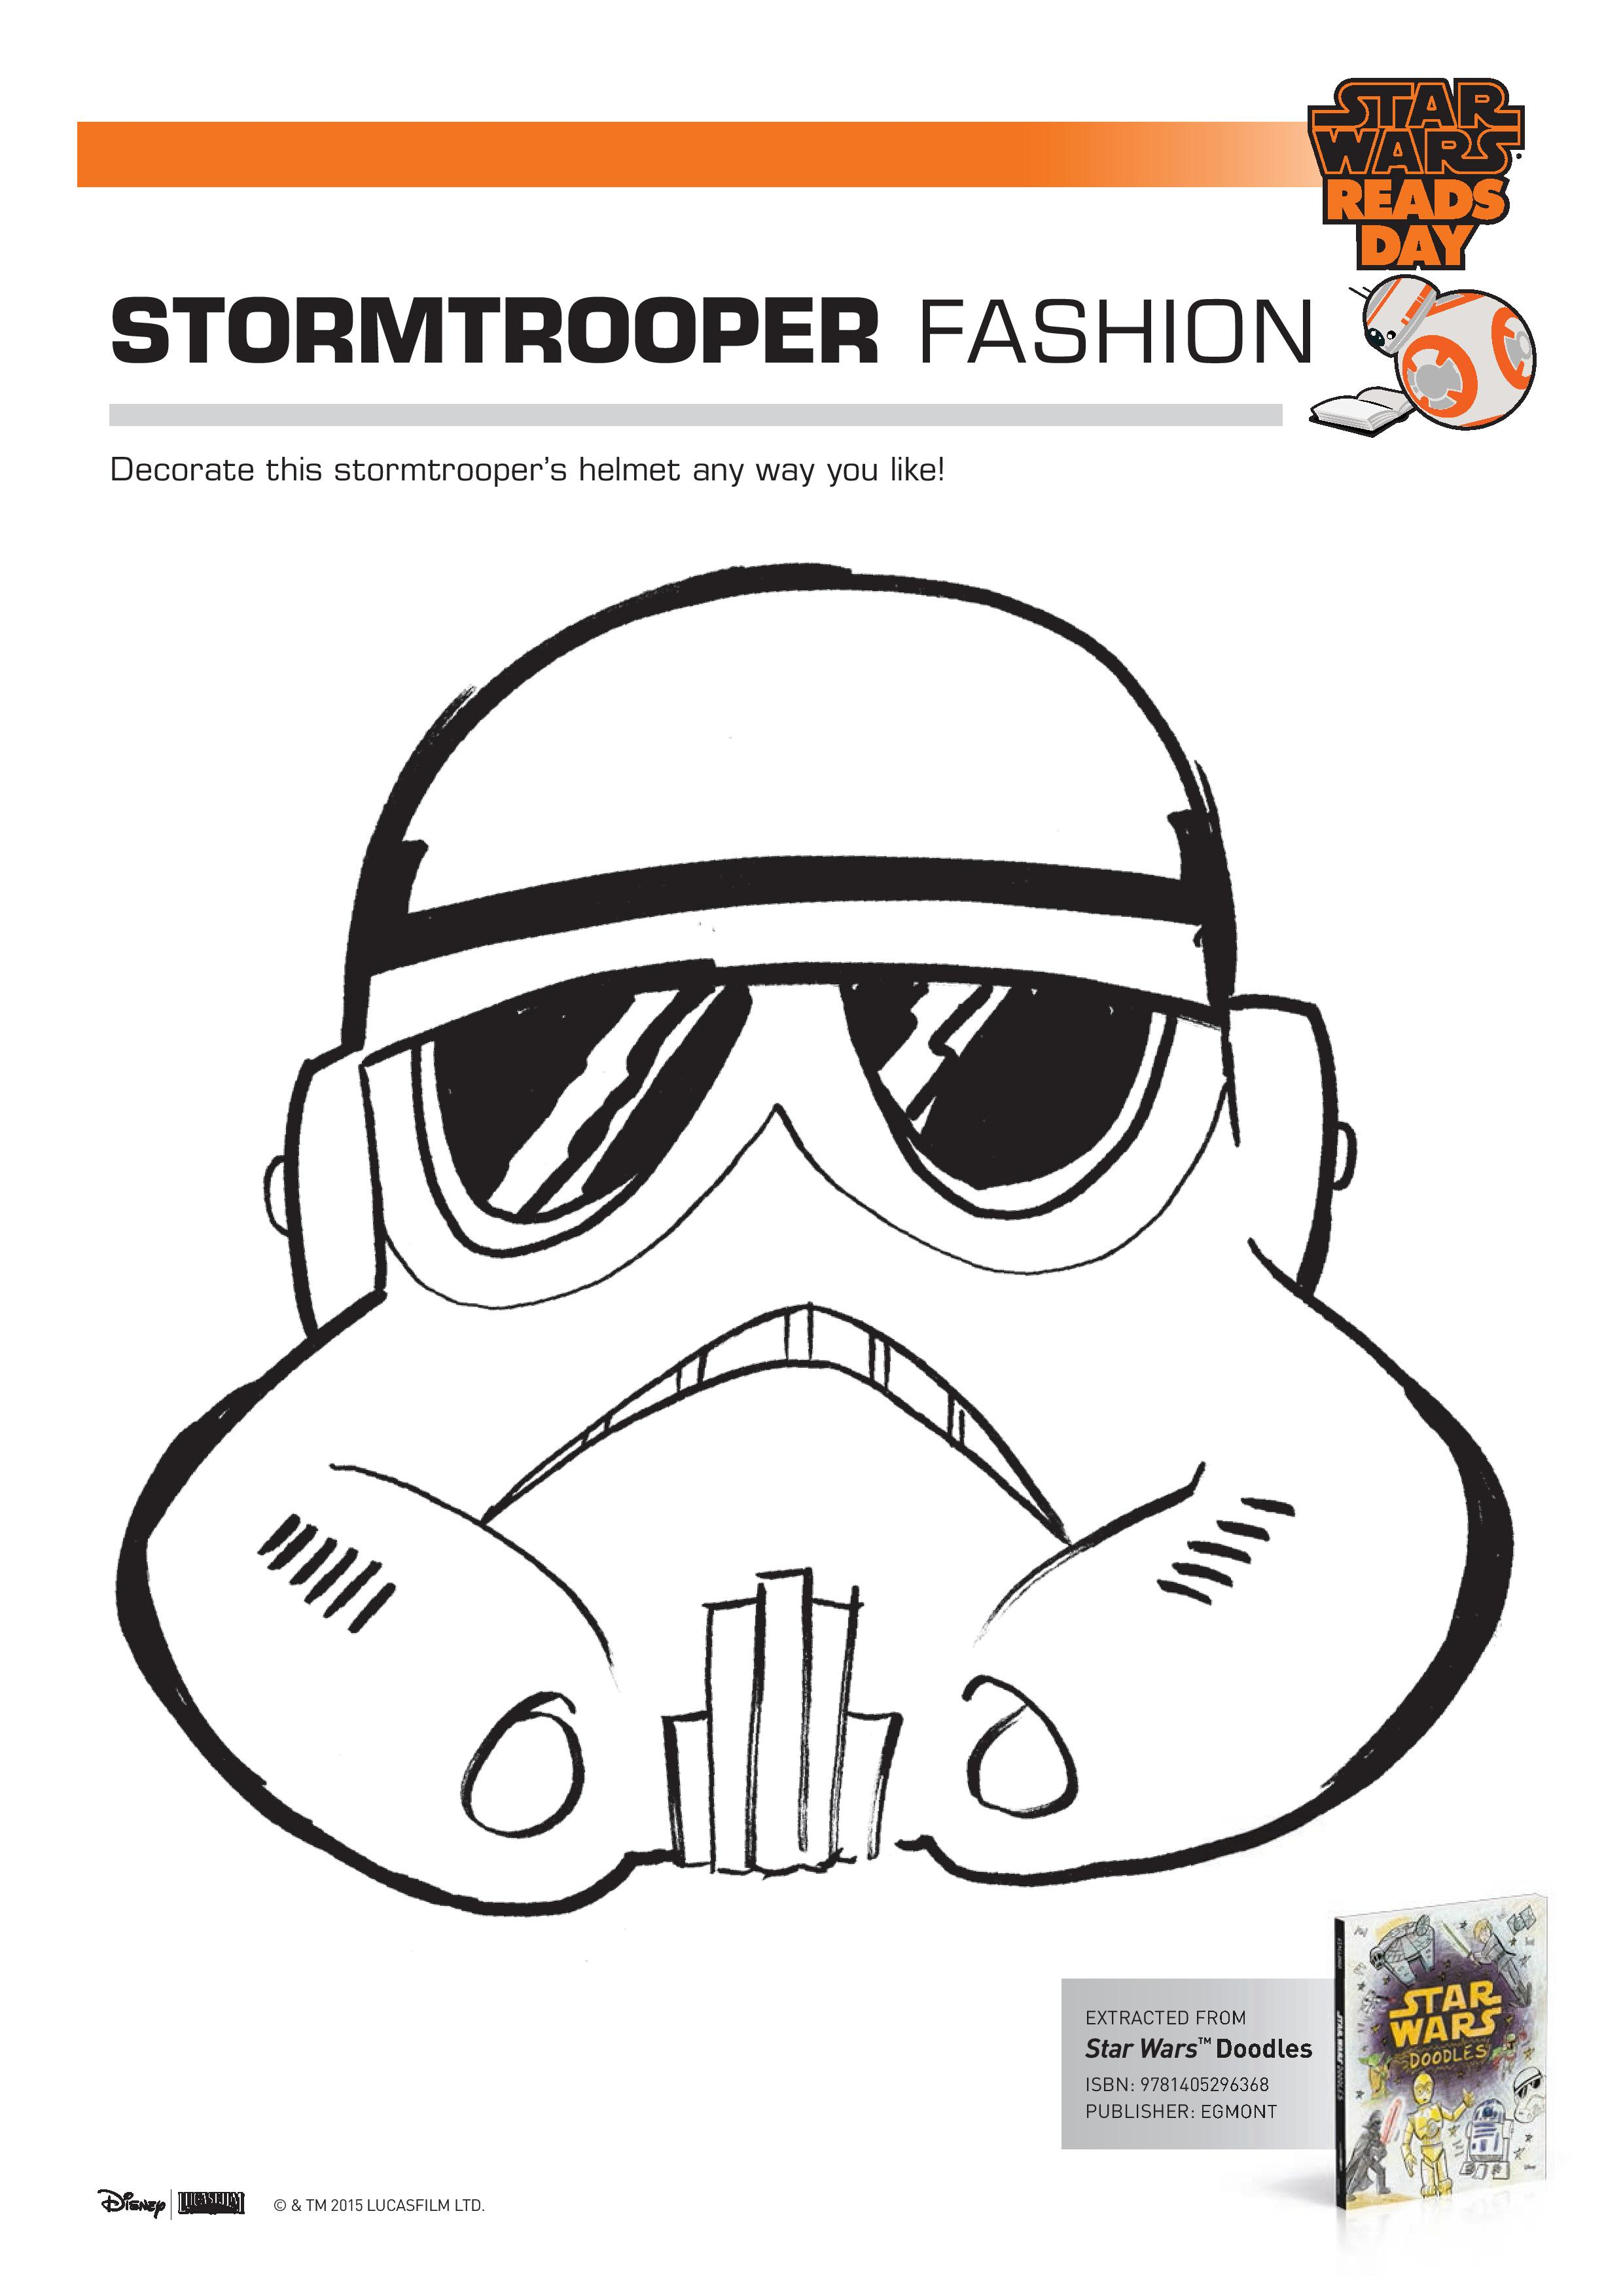 Star Wars Storm Trooper Fashion colouring page printable. Decorate the storm troopers helmet